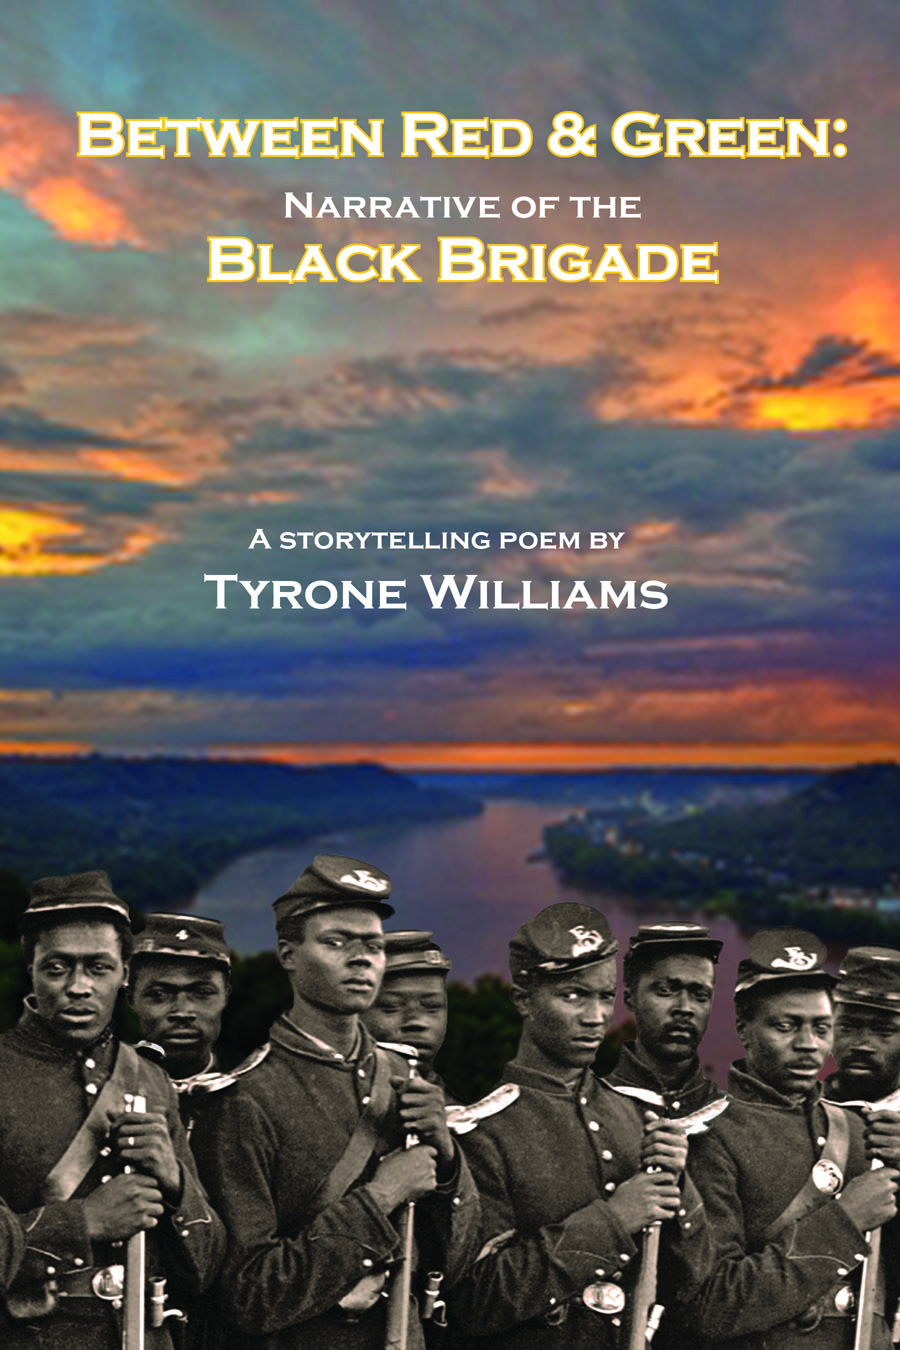 Between Red & Green: Narrative of the Black Brigade